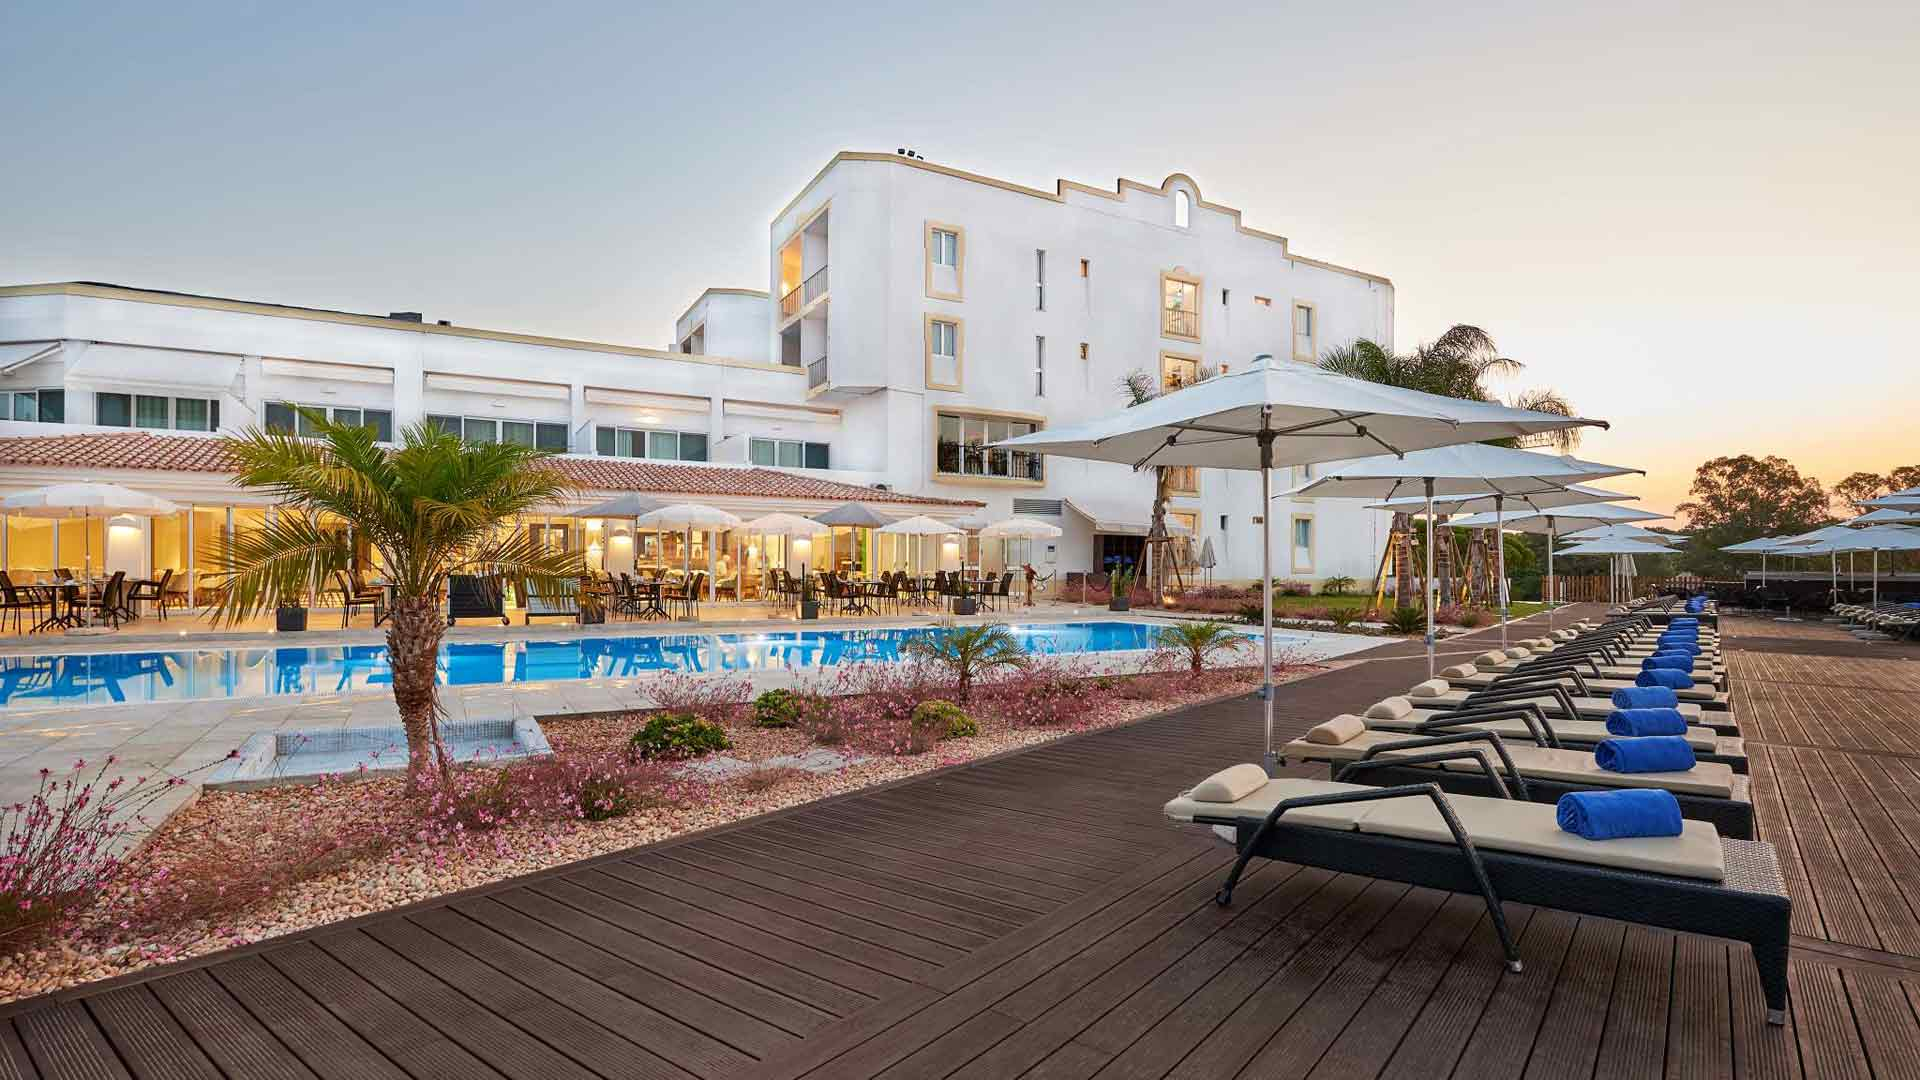 Dona Filipa Hotel in Vale do Lobo algarve - Photo 4